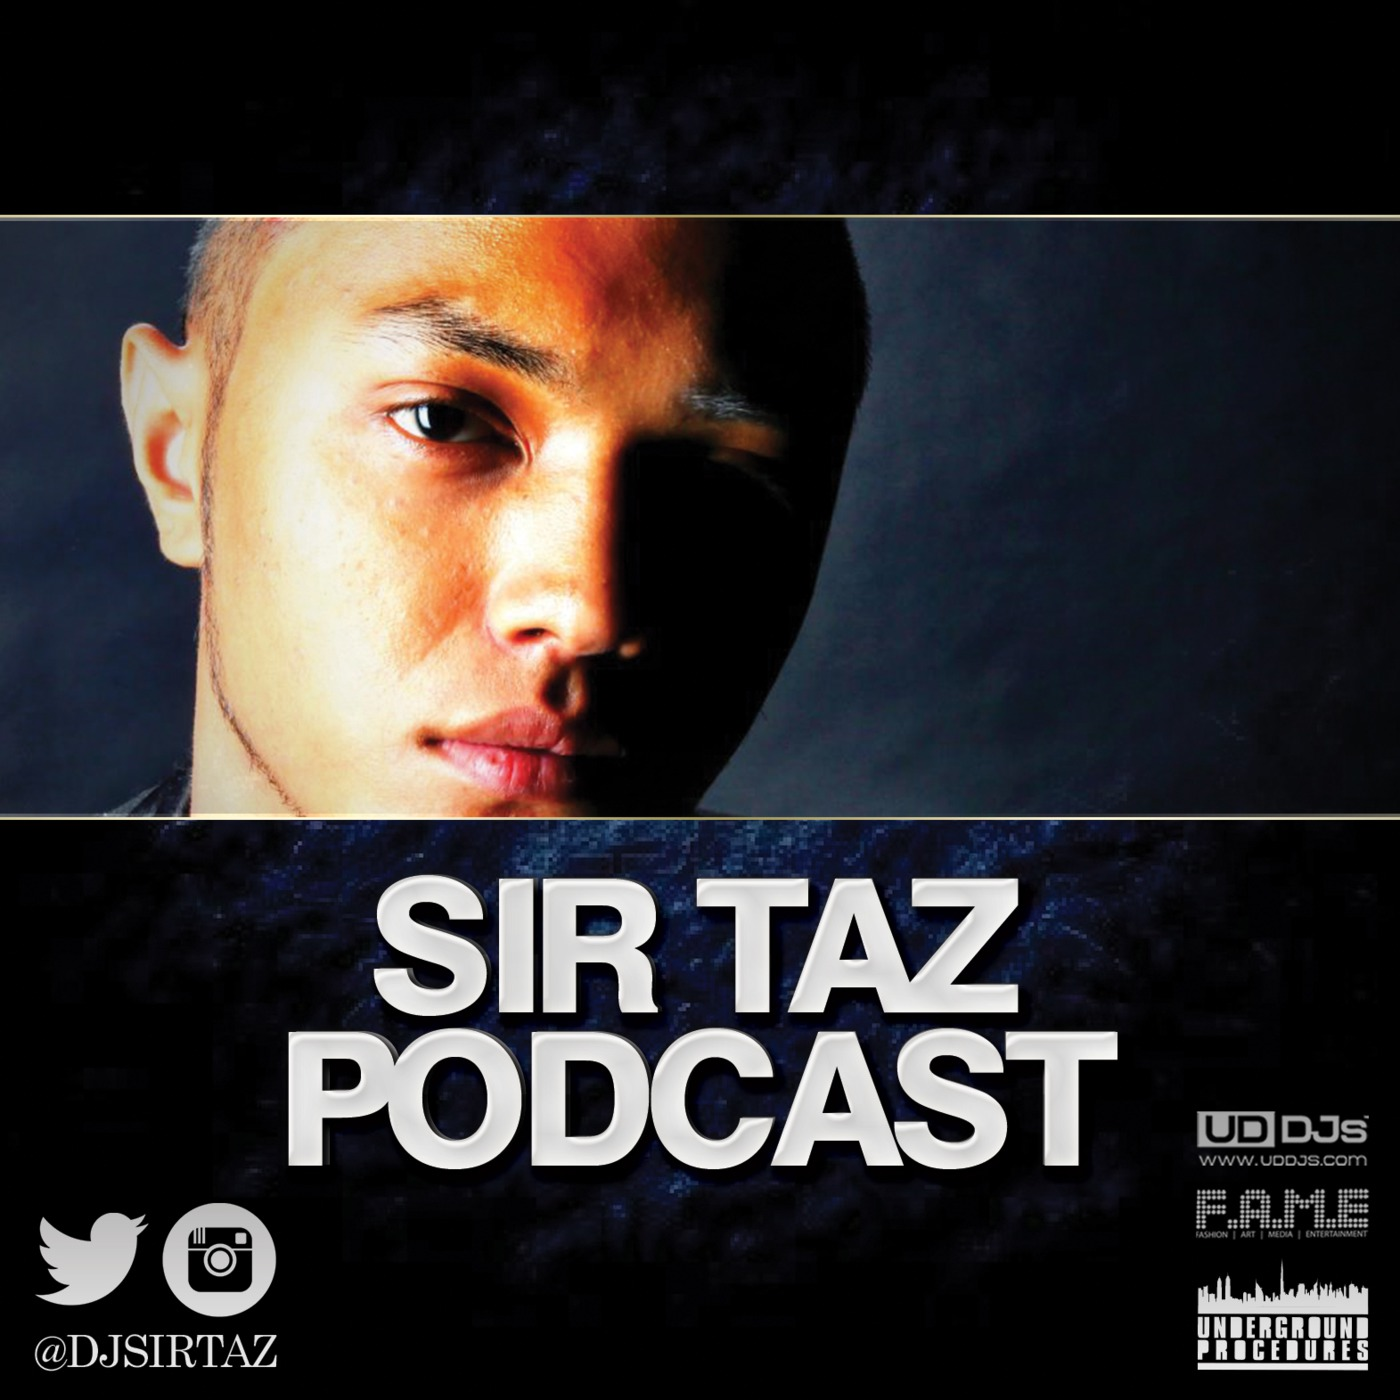 Sir Taz's Podcast